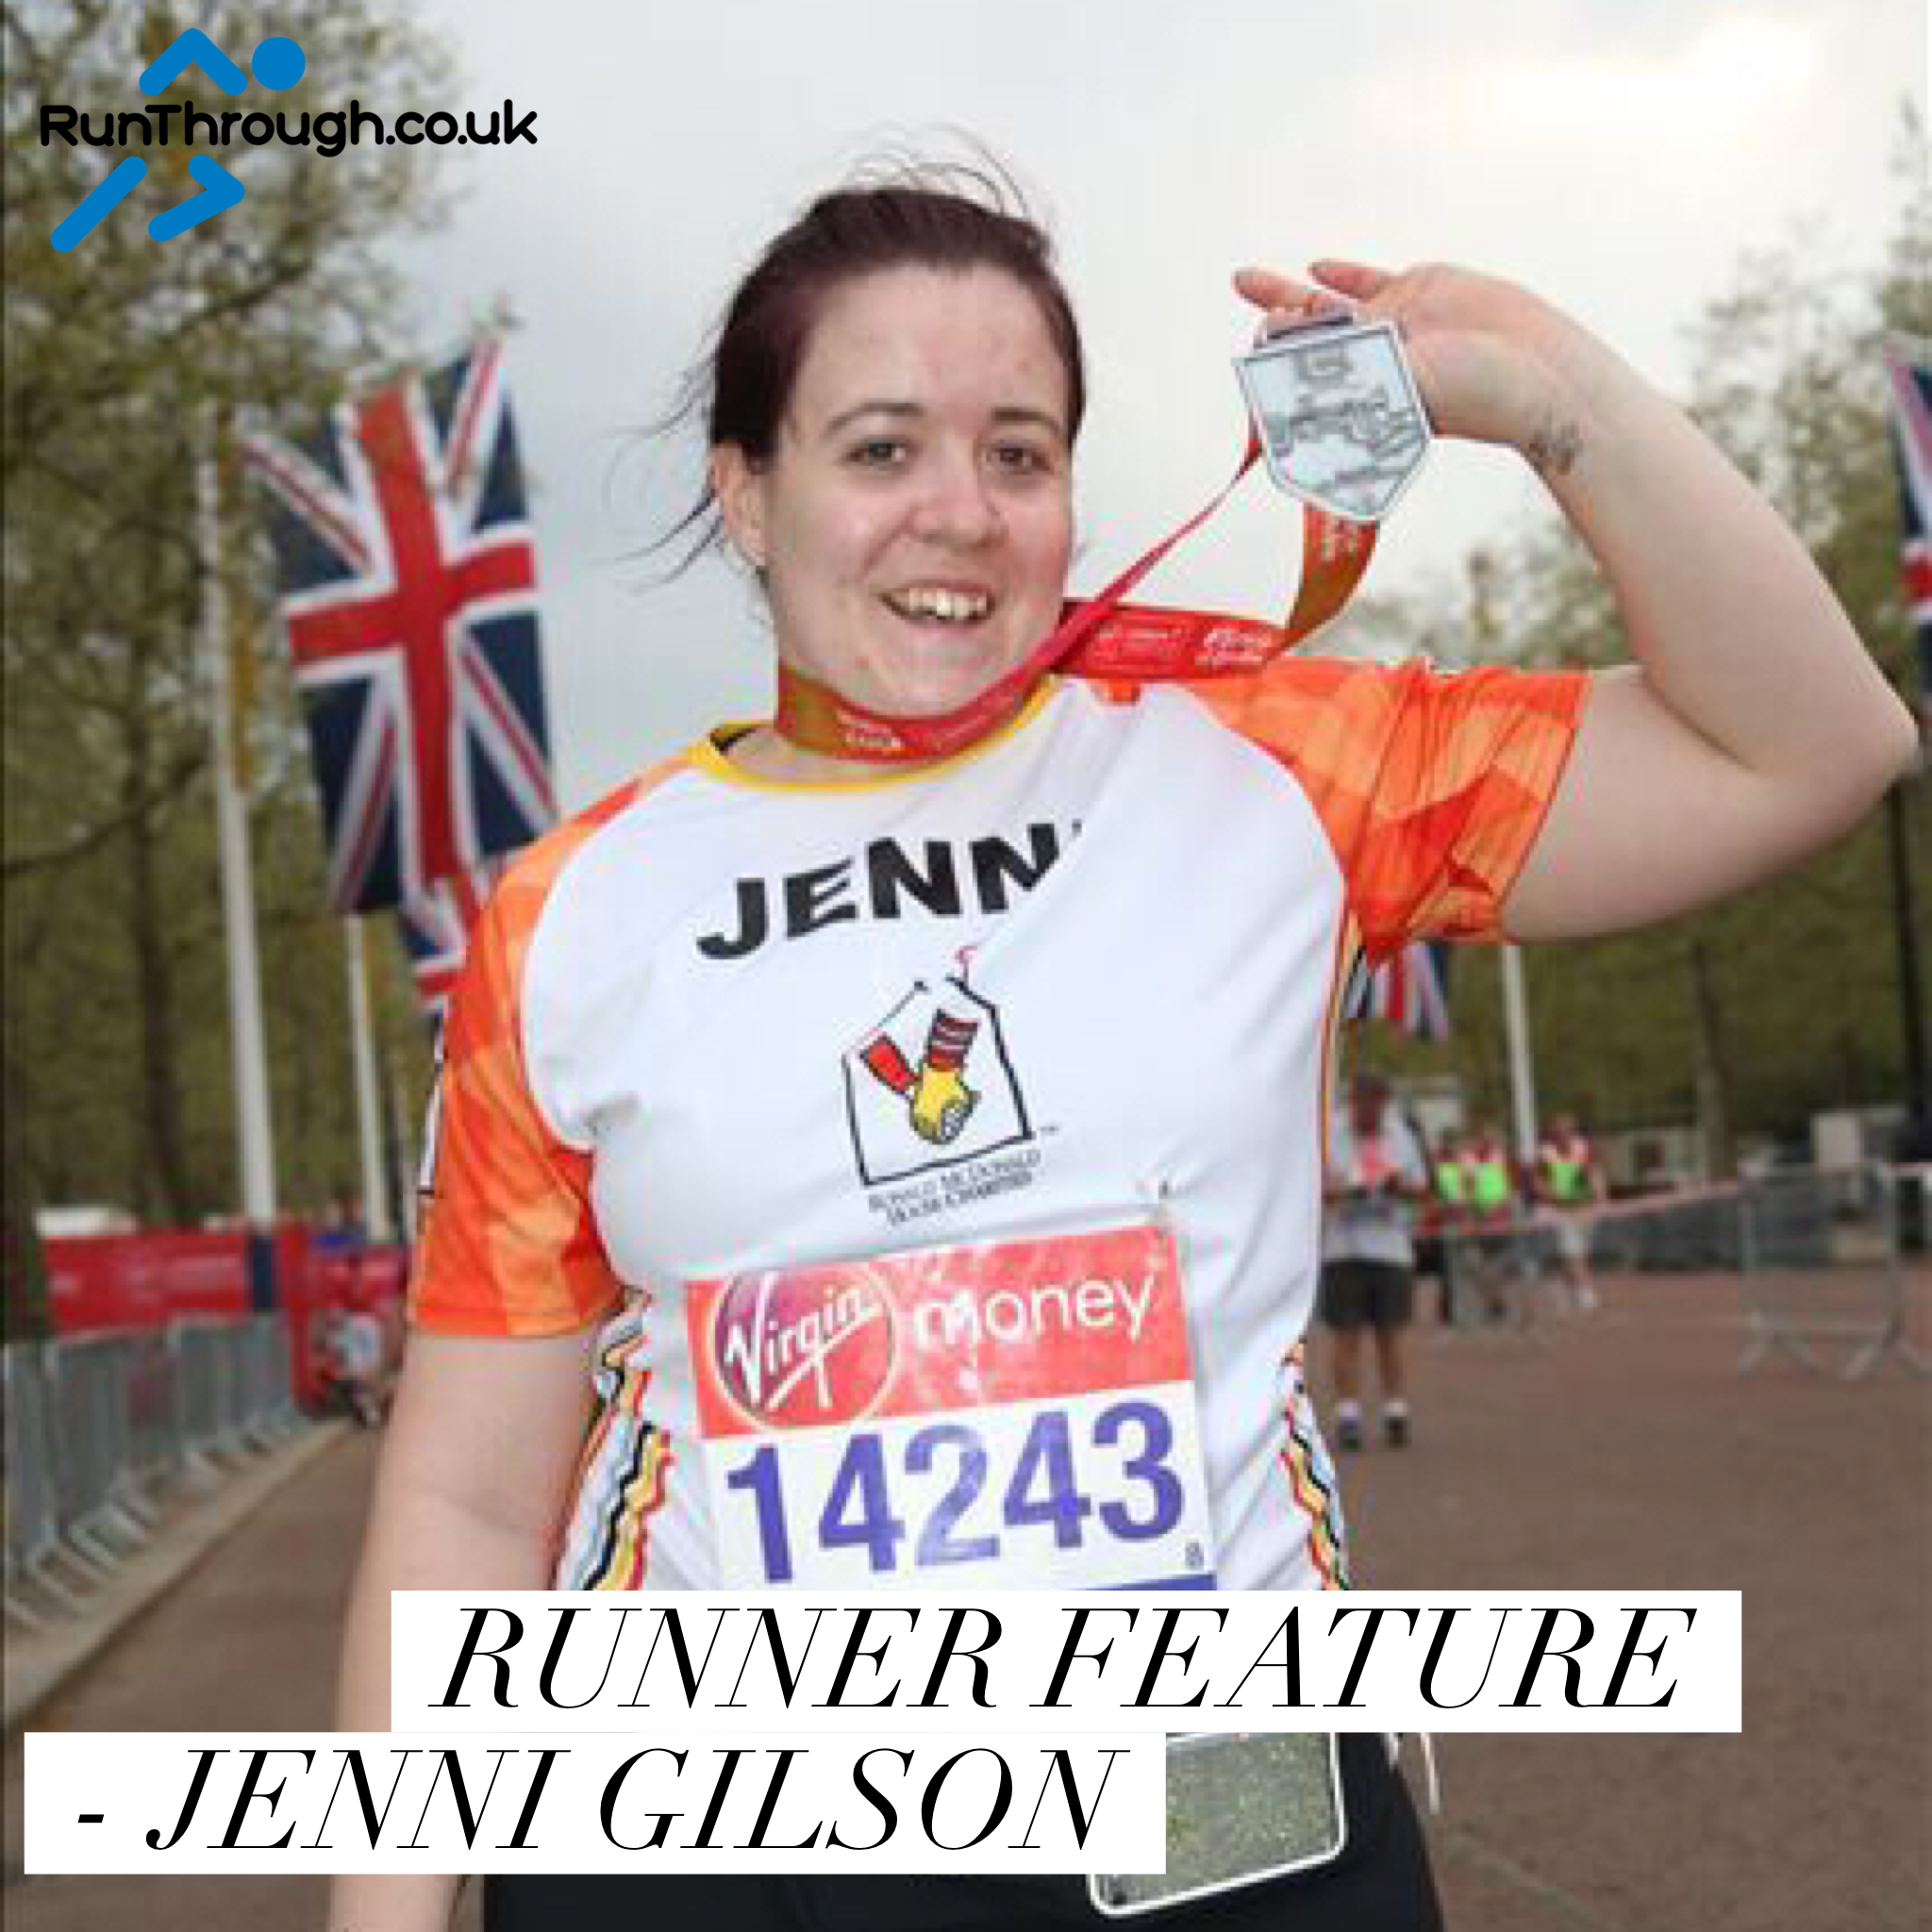 Runner Feature – Jenni Gilson